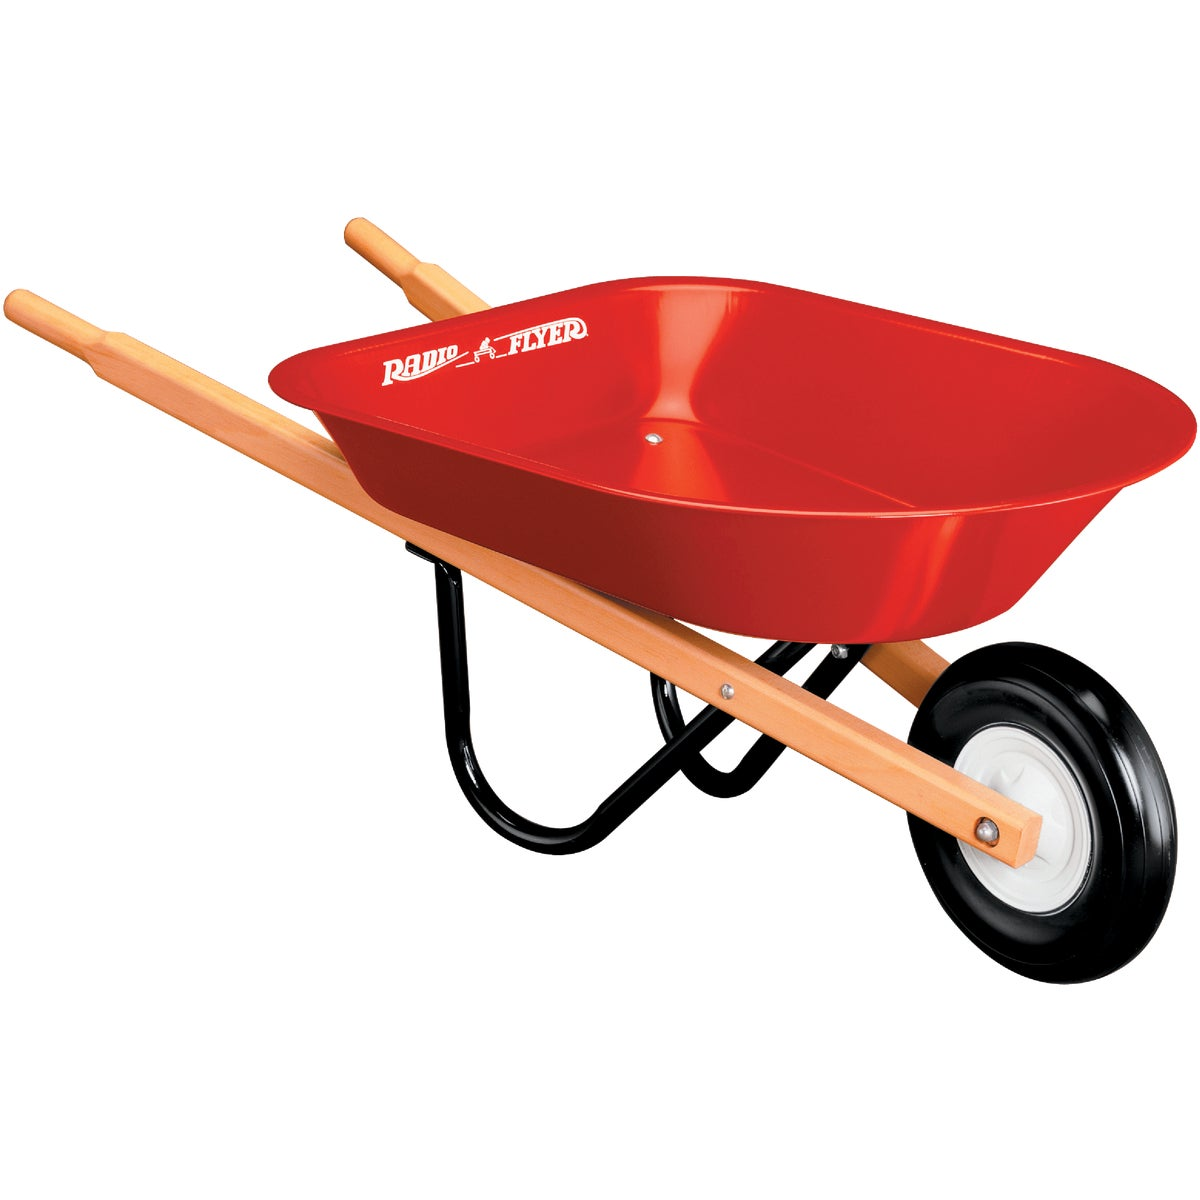 KIDS WHEELBARROW - 40 by Radio Flyer Shanghai